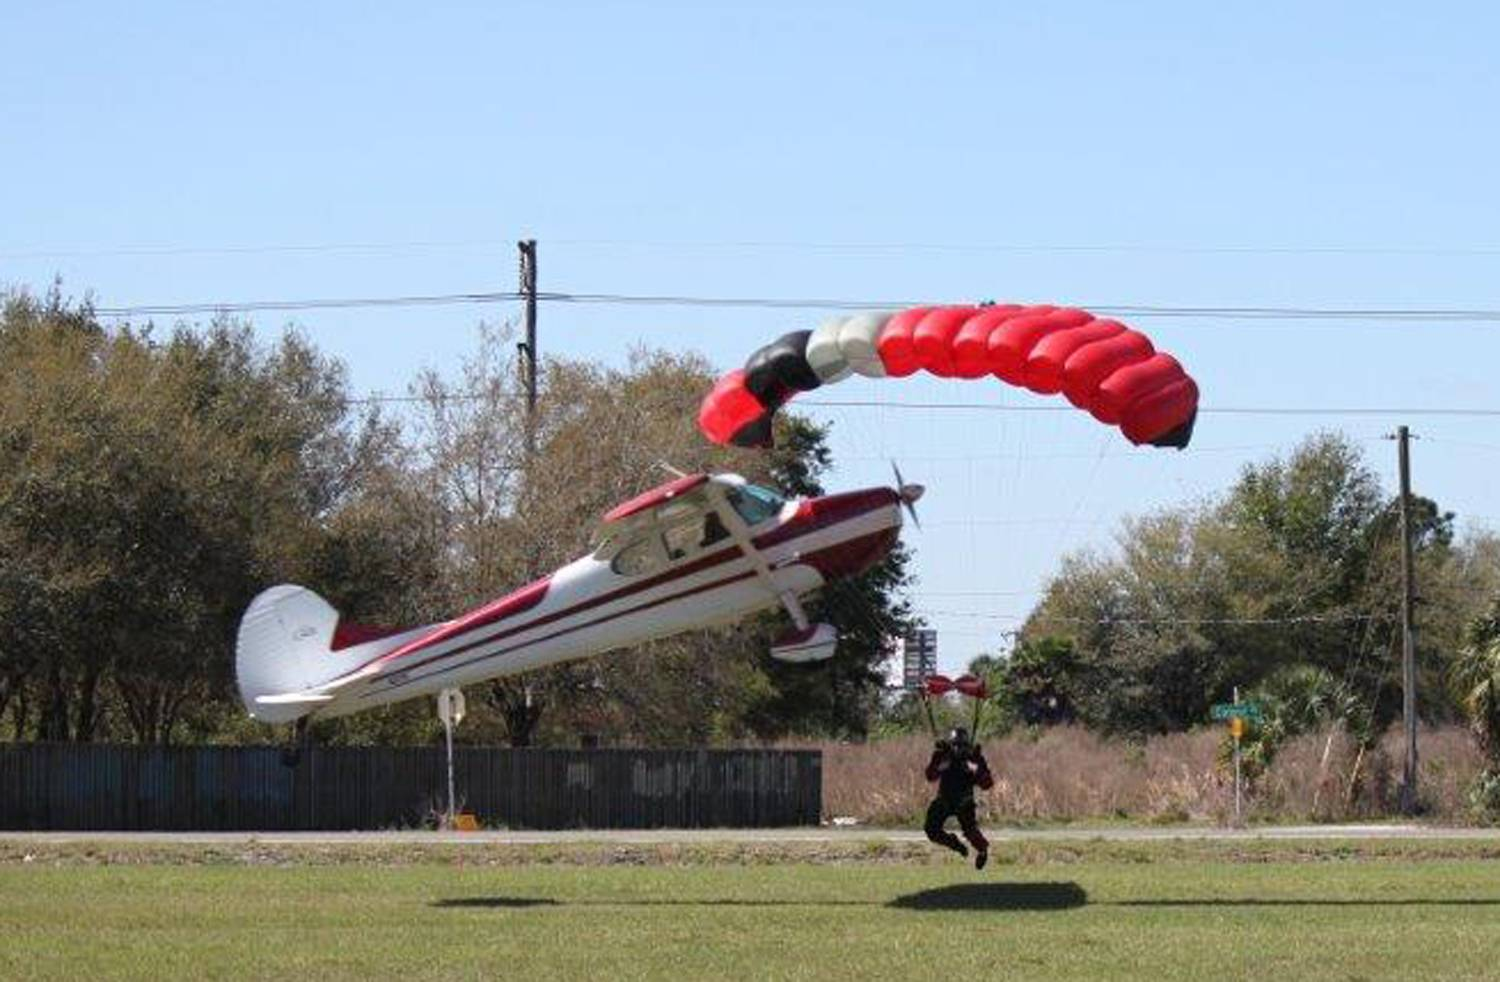 A plane gets tangled Saturday with a parachutist, at the South Lakeland Airport in Mulberry, Fla. Both the pilot and jumper hospitalized with minor injuries.